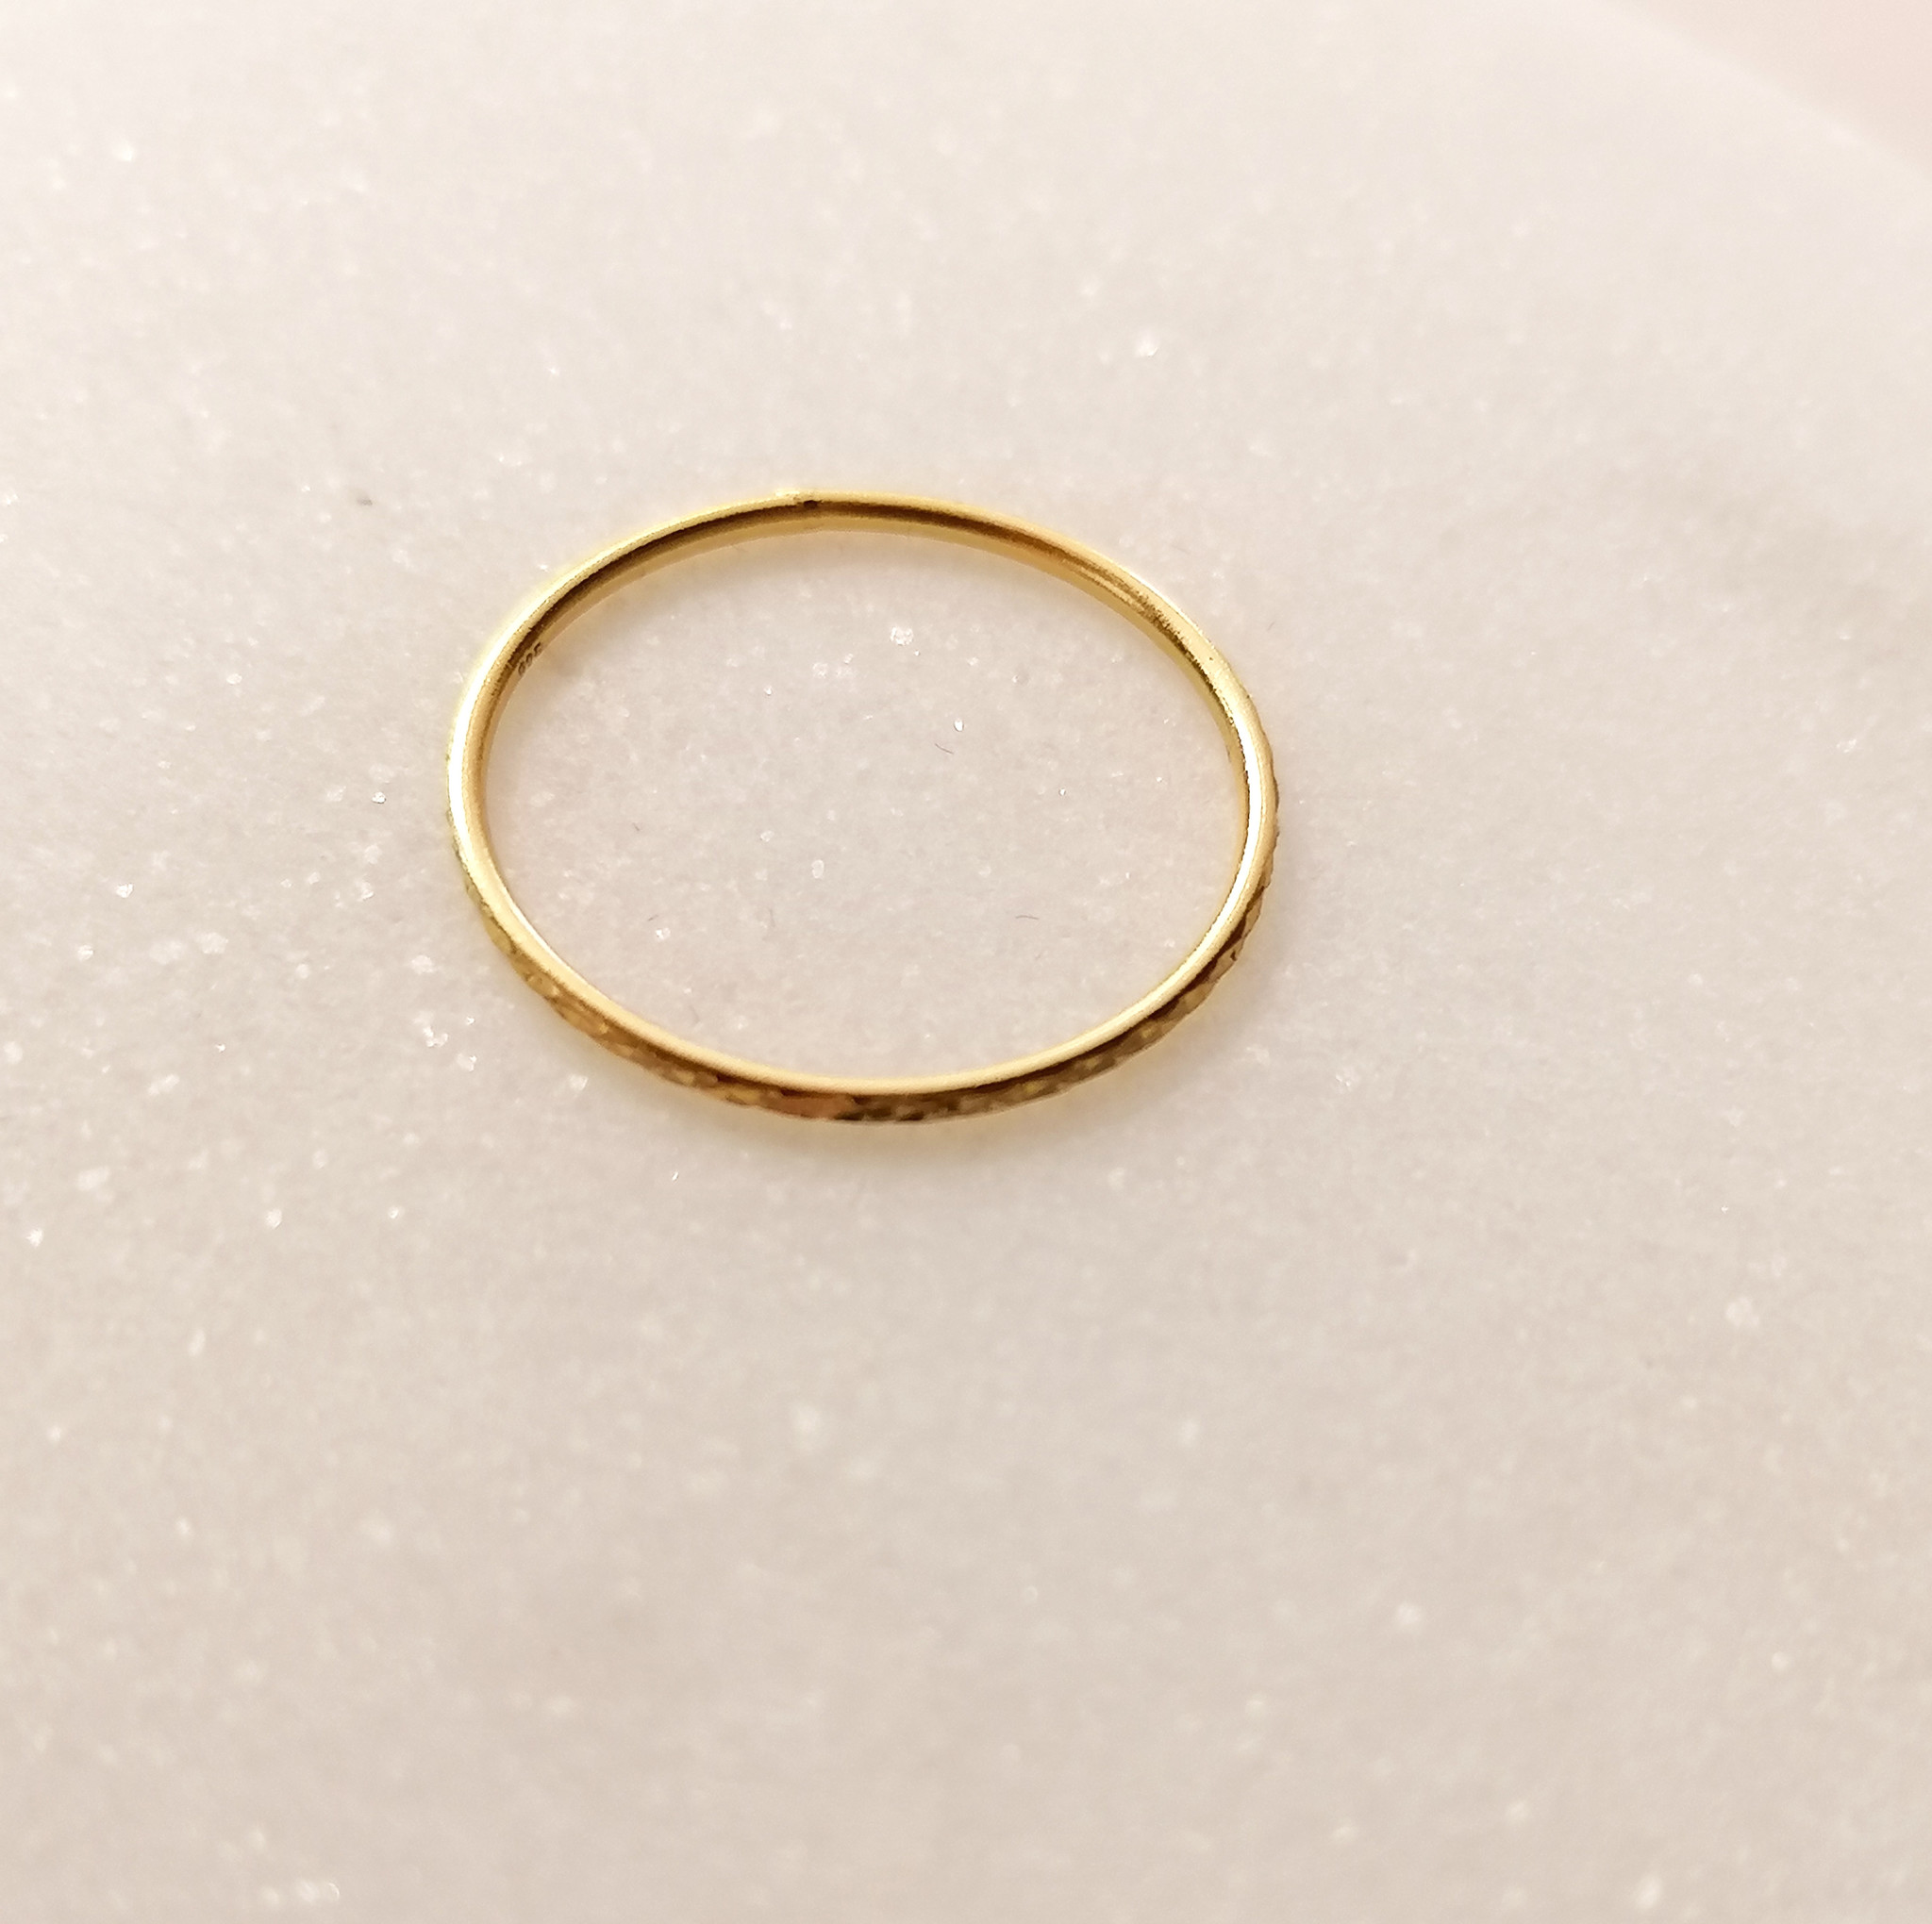 Gold ring with facet cut - 925 sterling silver-6